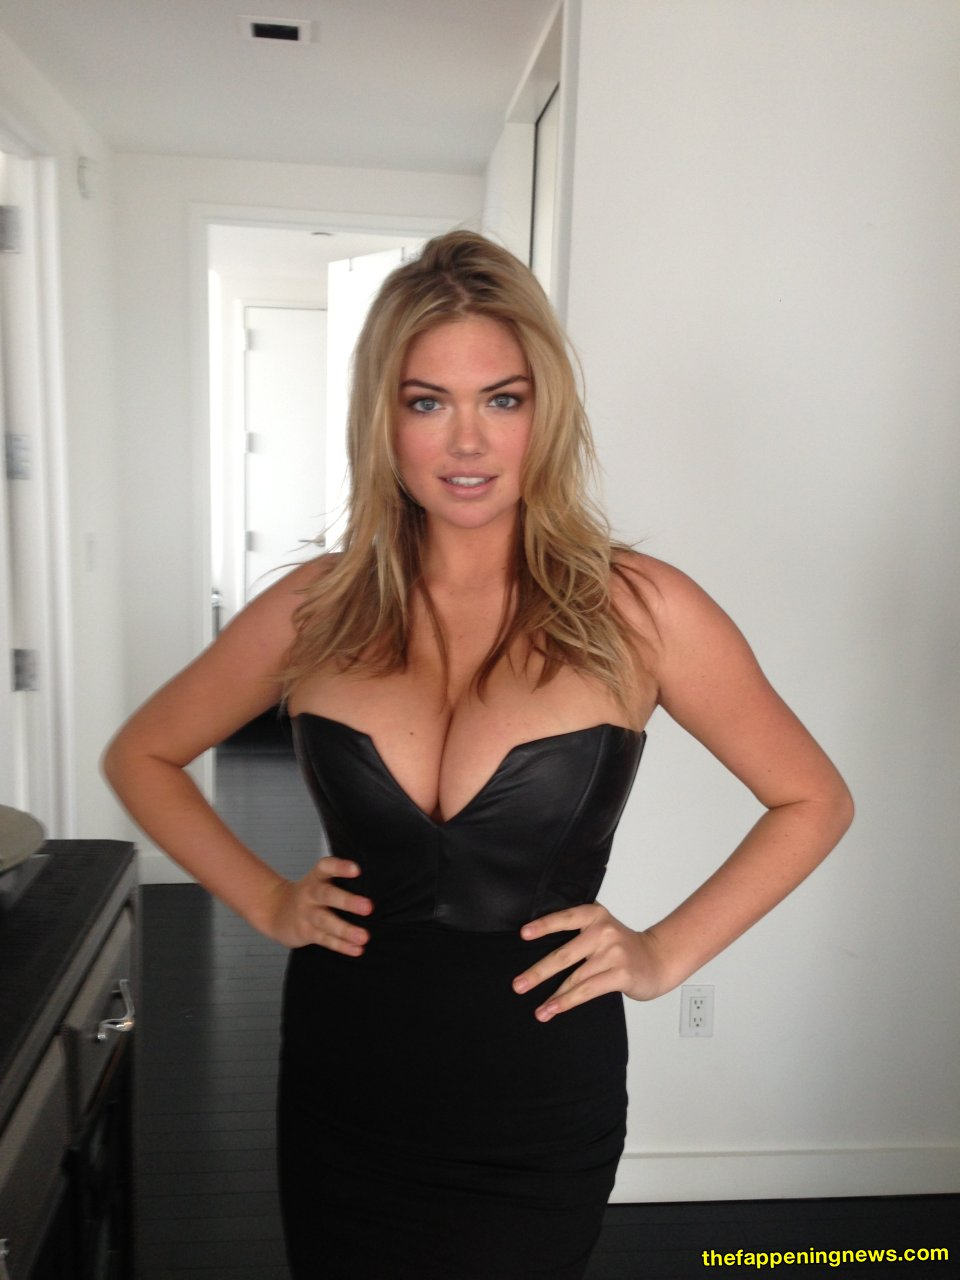 Kate Upton Nude Leaked Photos The Fappening 2020